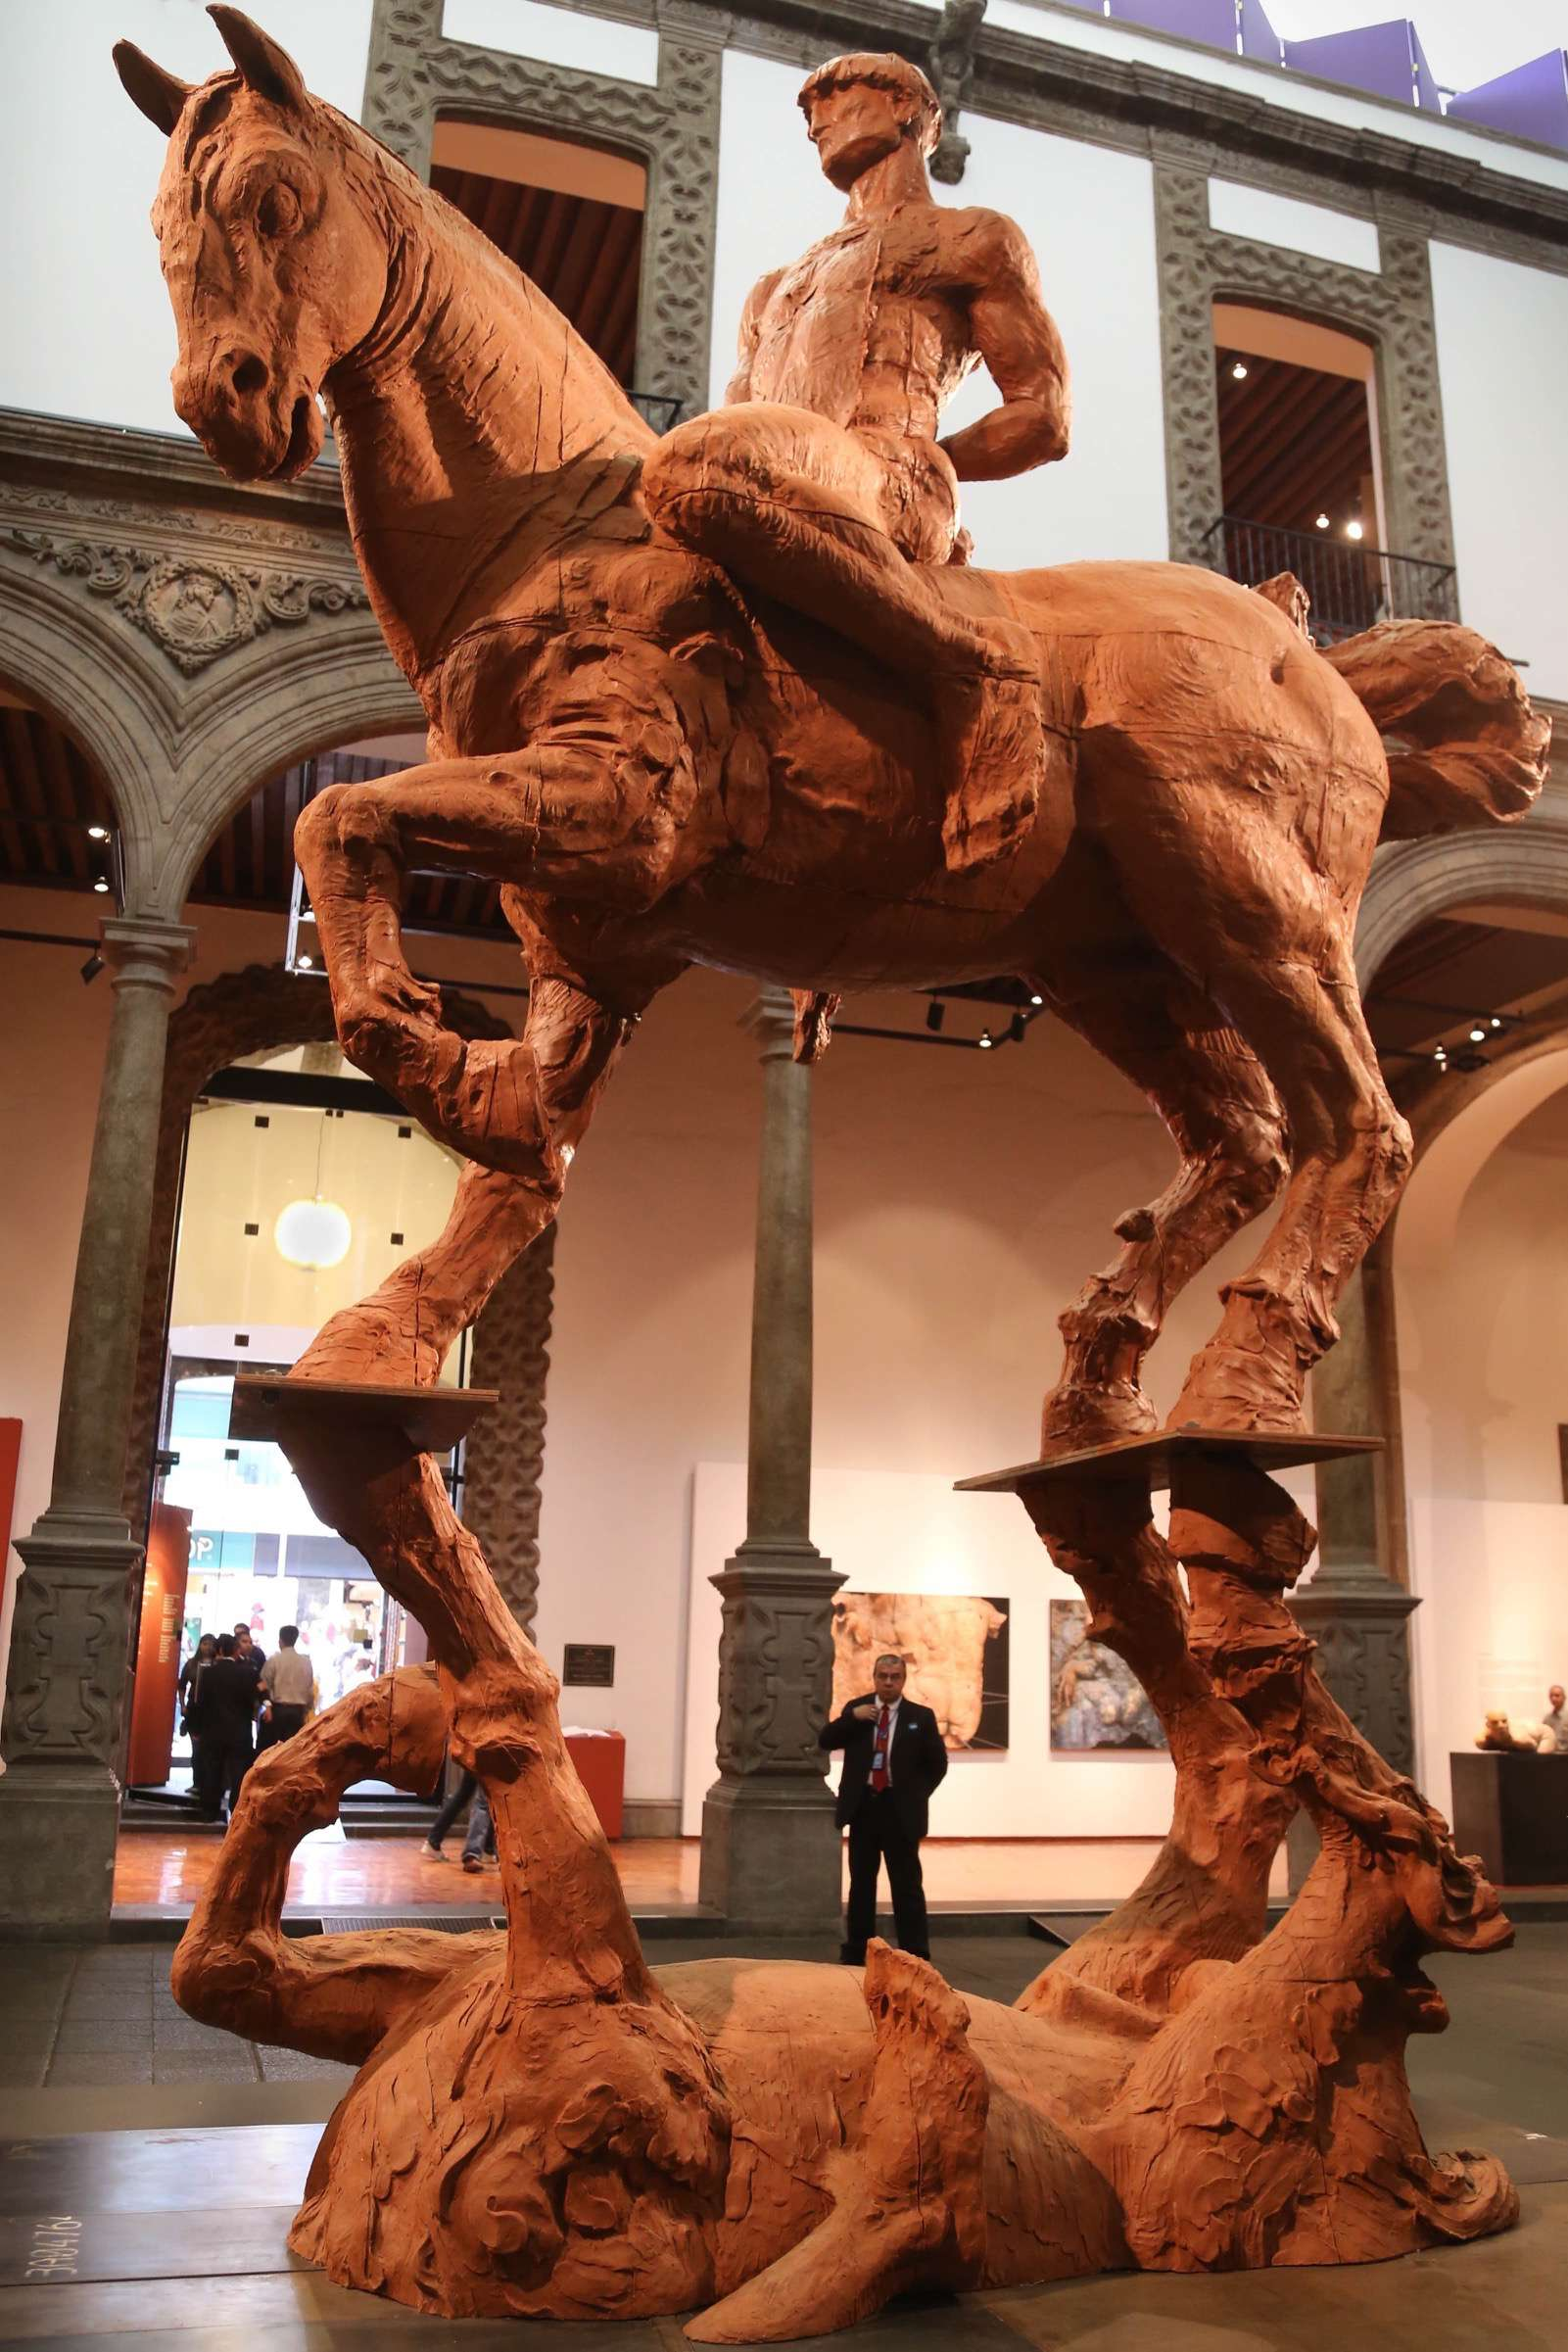 The massive horse-on-horse can be interpreted any number of ways and invites the viewer to visually roam their eyes over the piece.